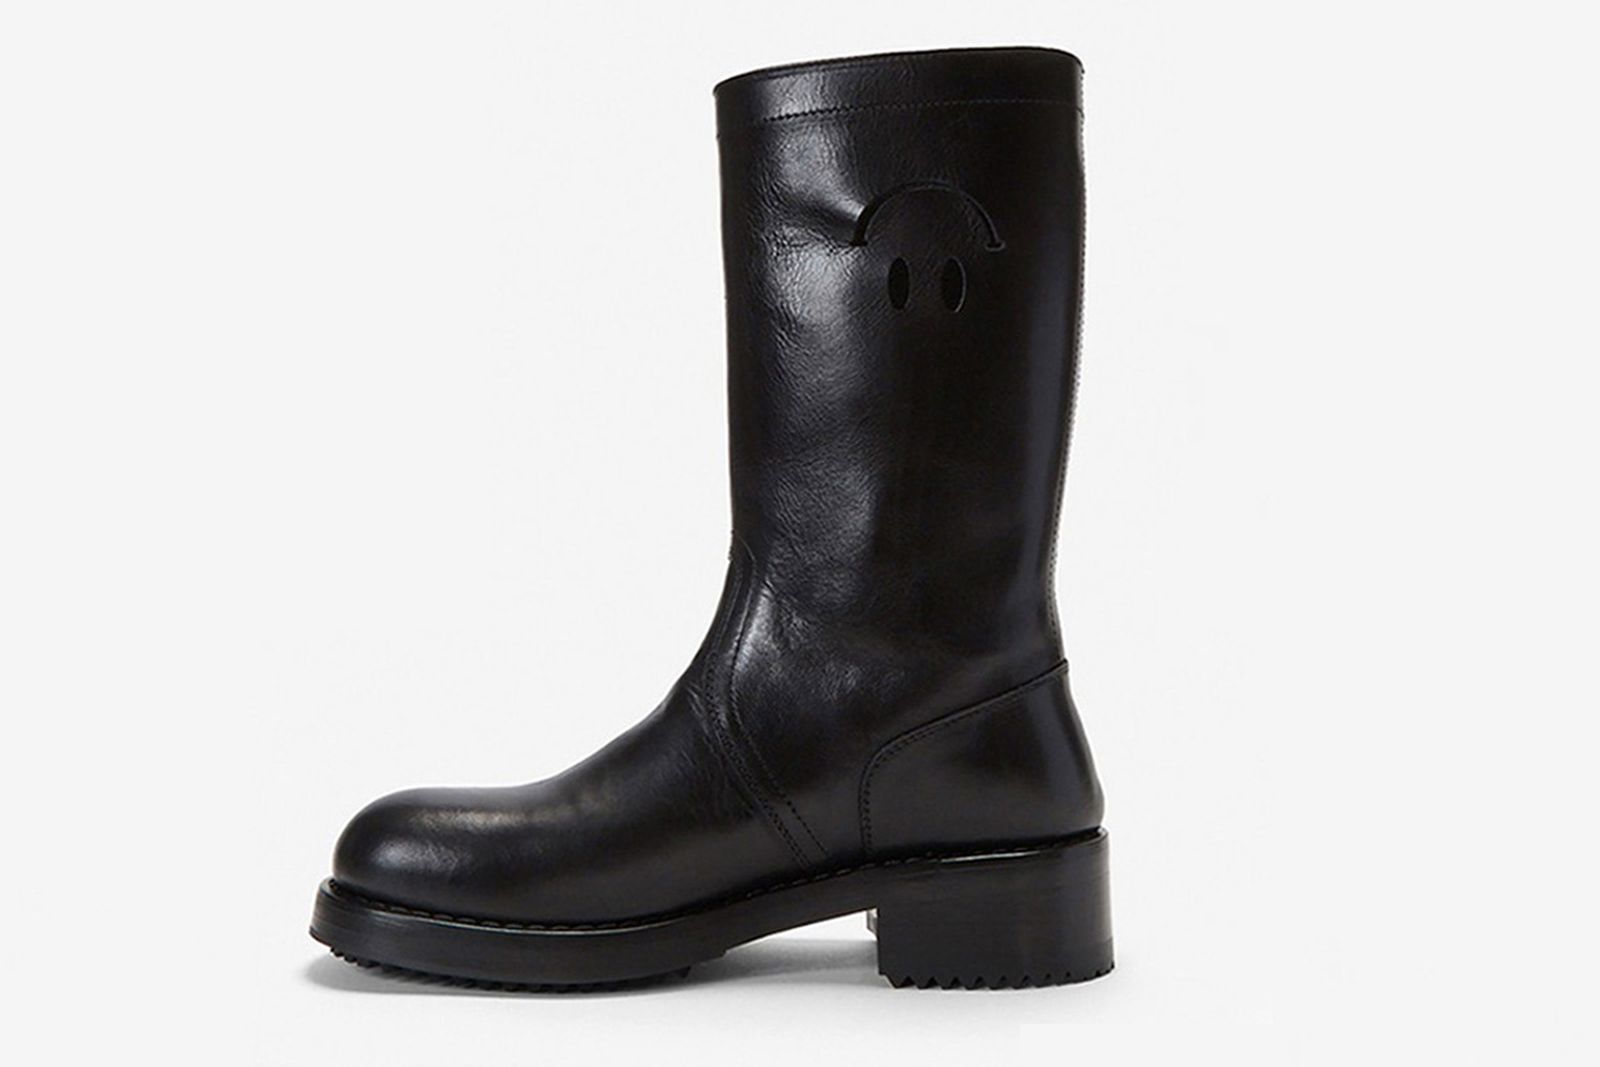 raf-simons-cut-out-smiley-boot-release-date-price-01